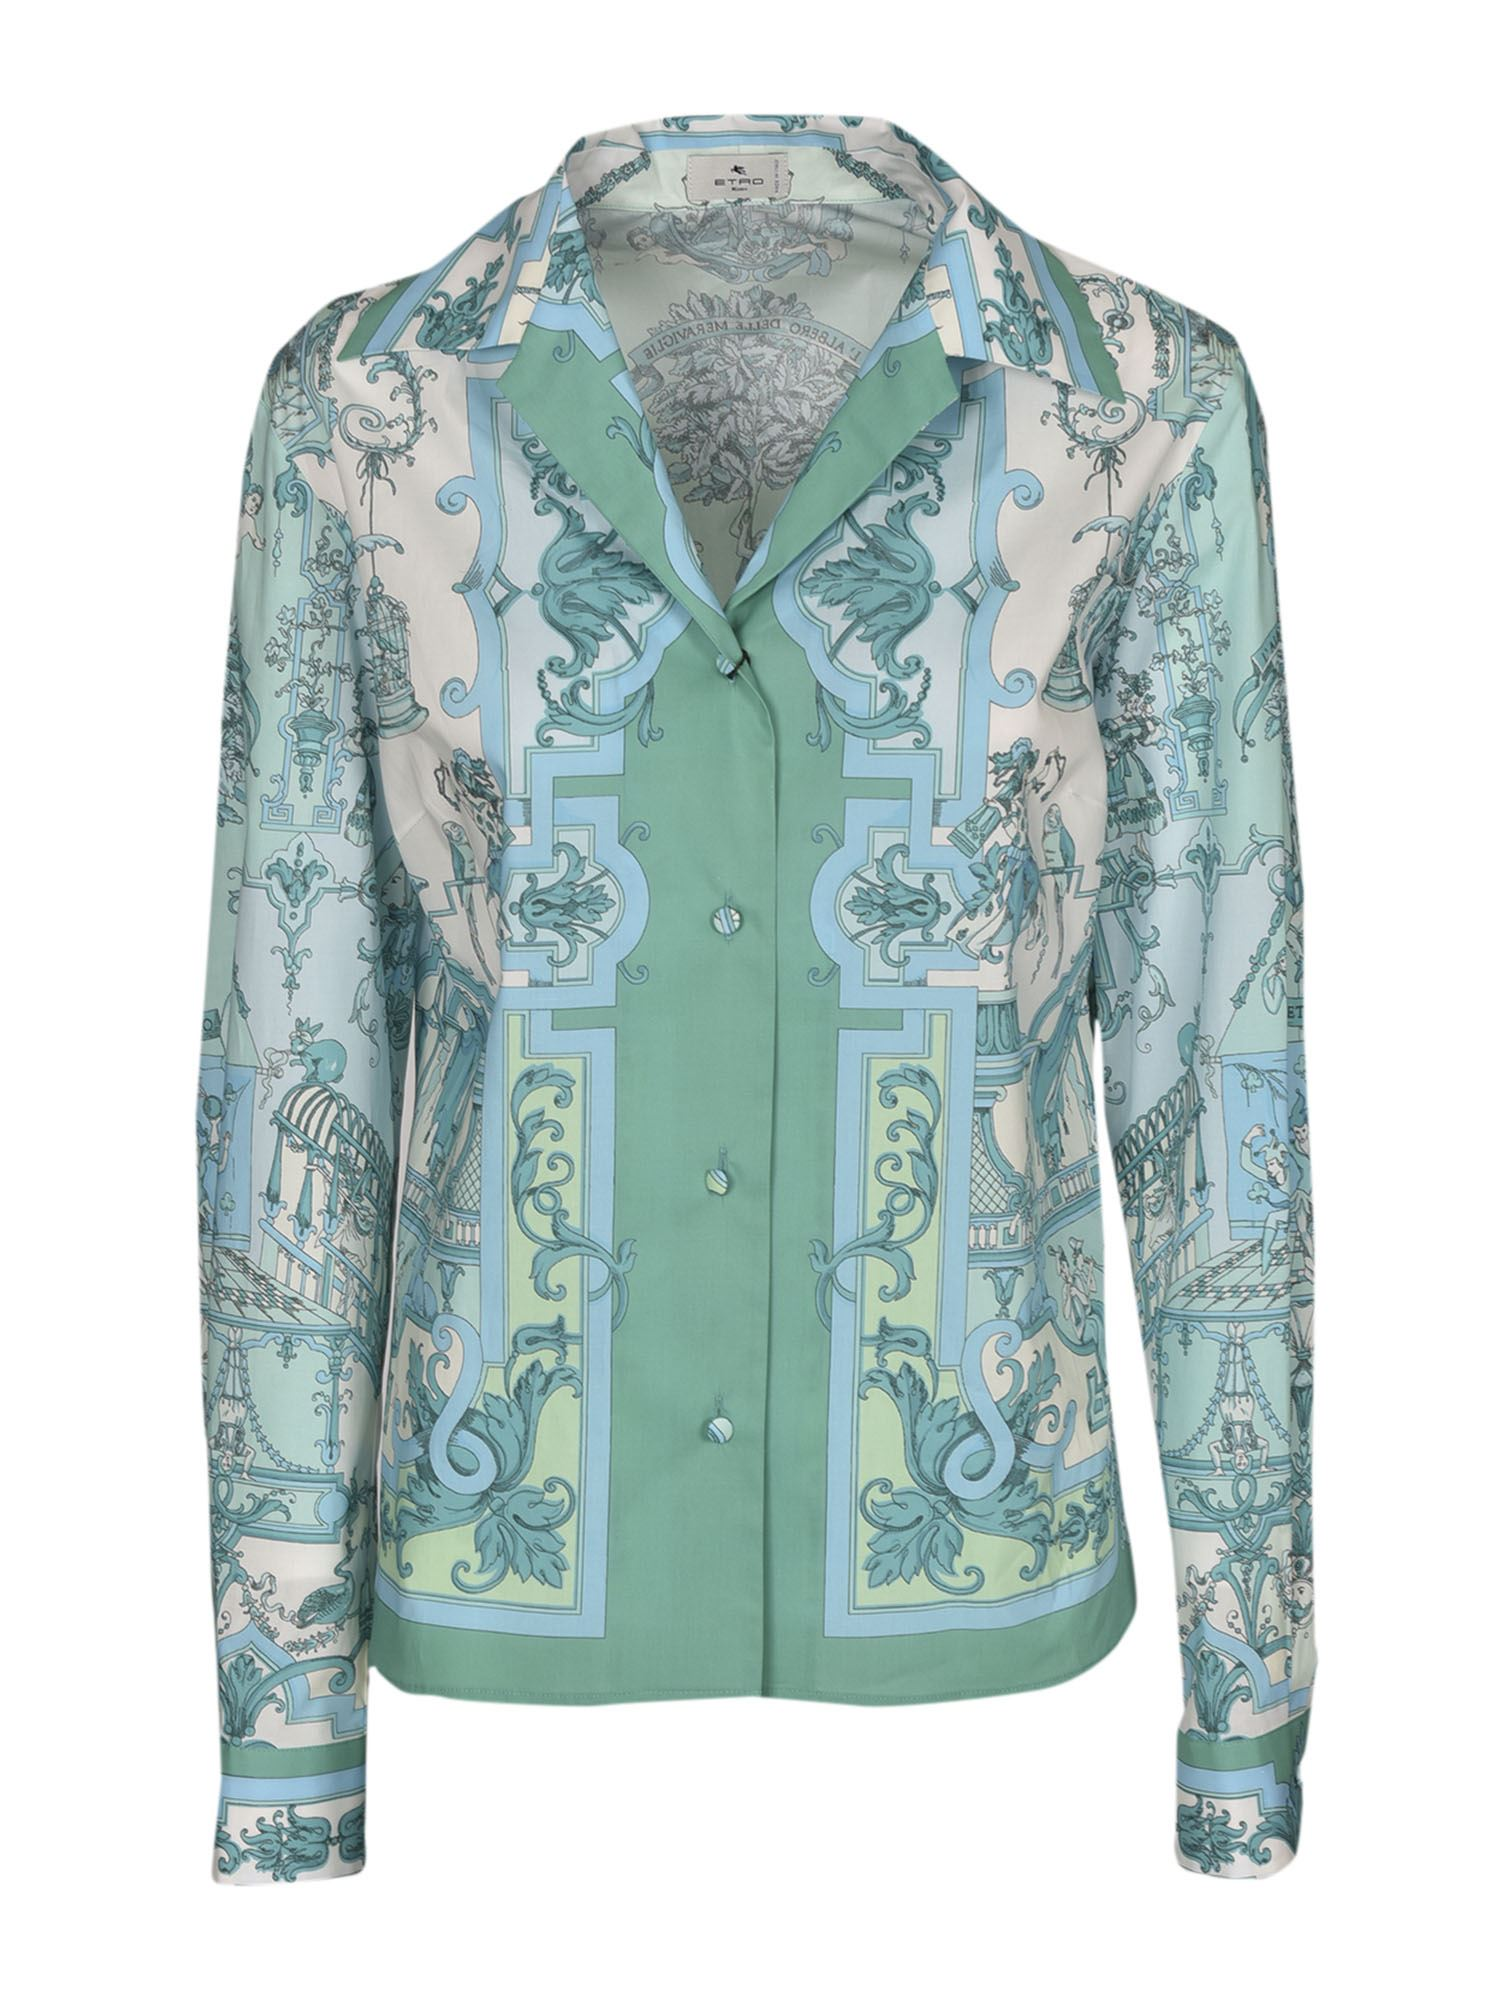 Etro Cottons SCARF PRINTED SHIRT IN SHADES OF LIGHT BLUE